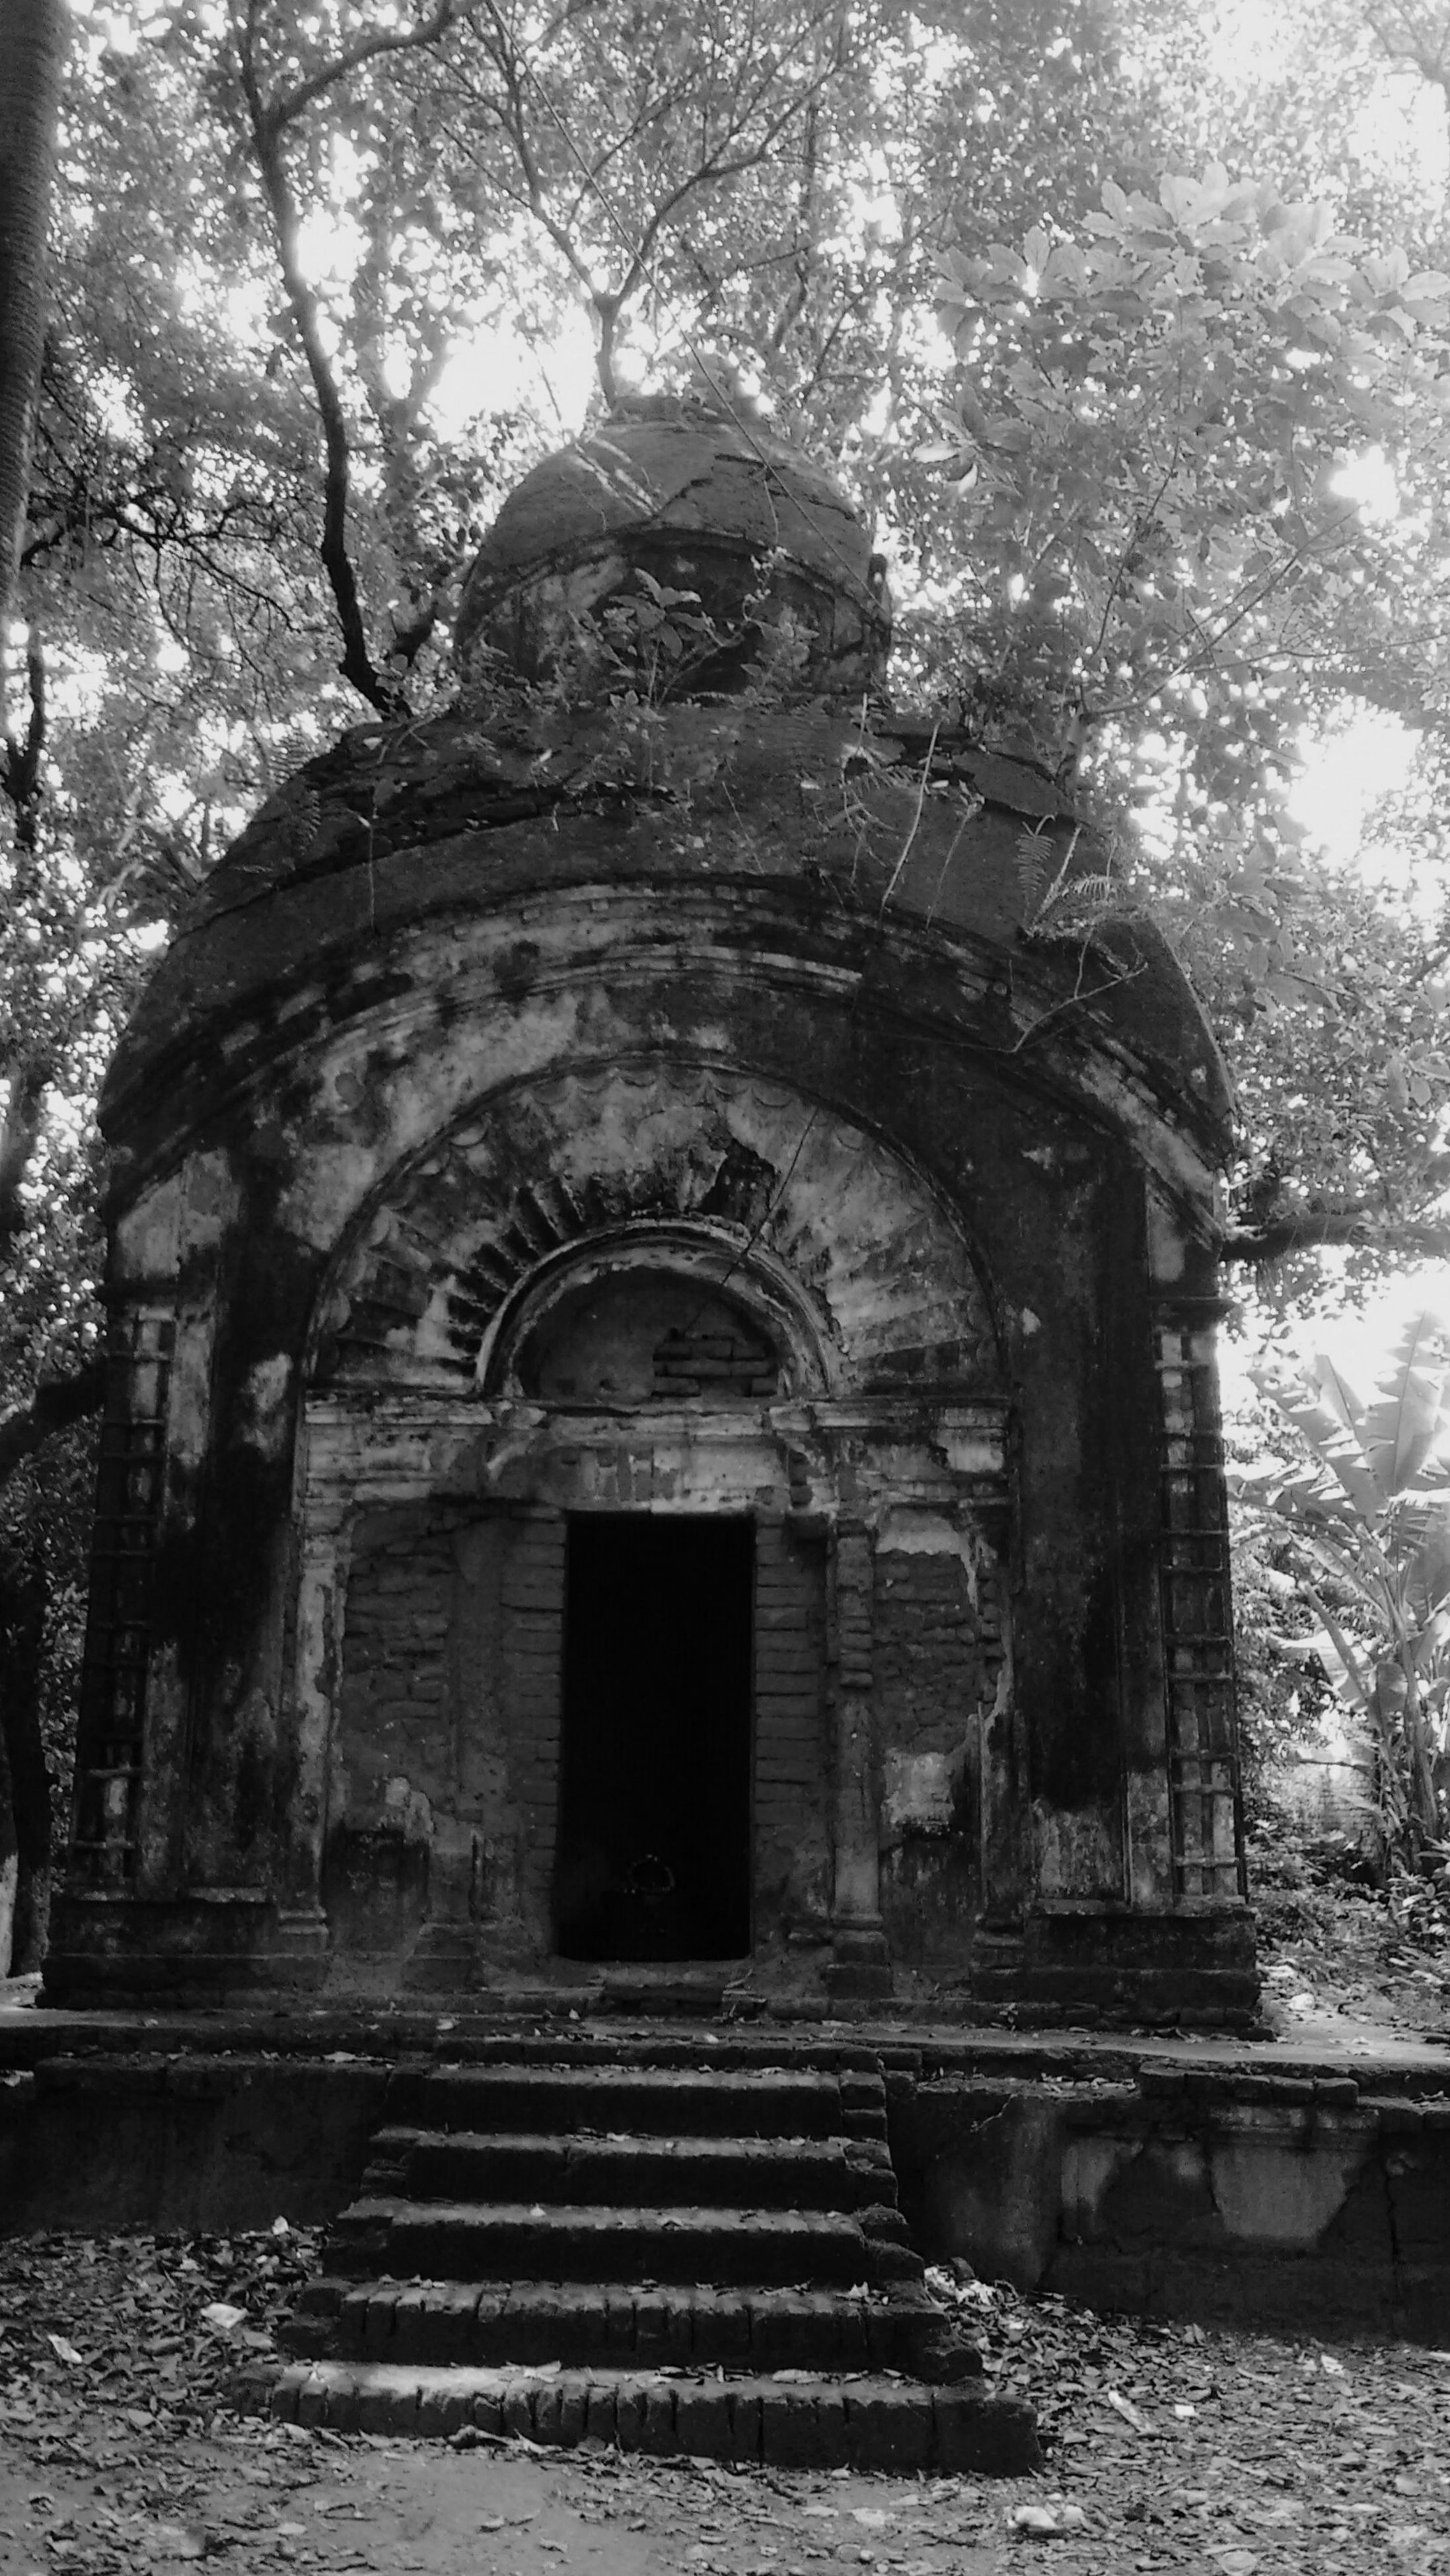 architecture, built structure, building exterior, arch, old, entrance, tree, door, abandoned, house, facade, day, low angle view, outdoors, history, weathered, place of worship, religion, window, damaged